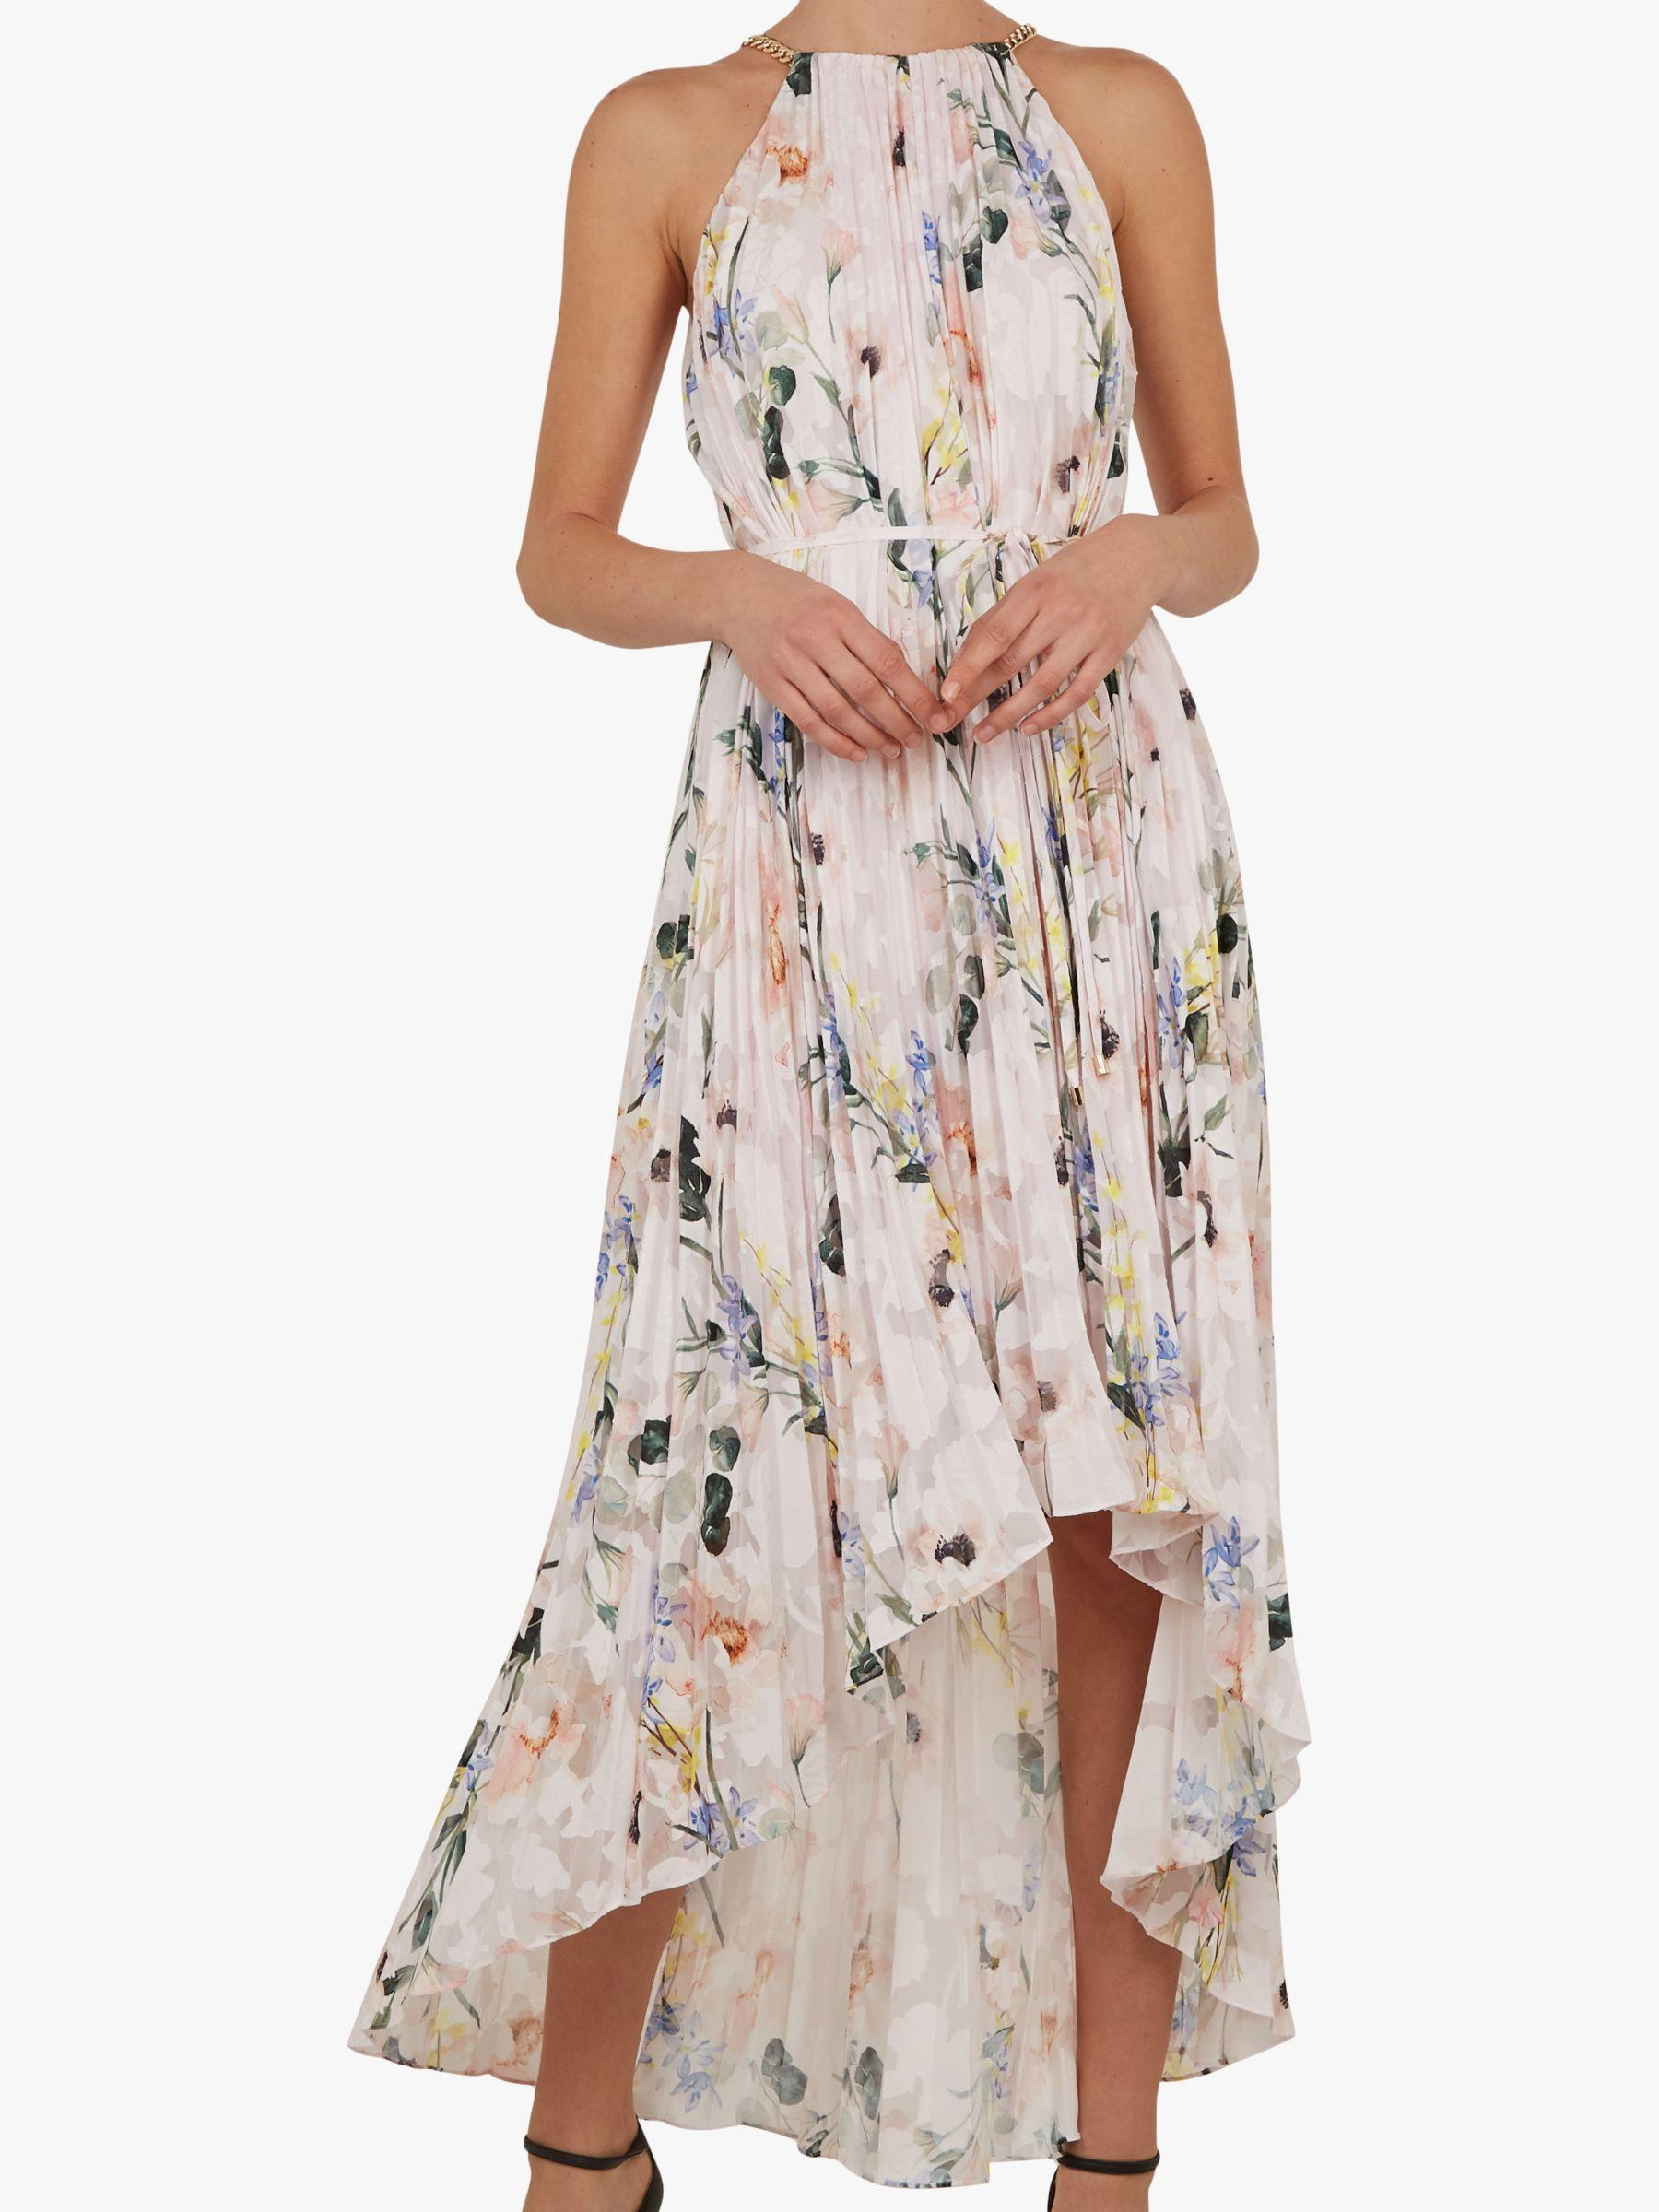 adfe1505a8c8 Ted Baker Valetia Dip Hem Floral Pleated Dress in White - Lyst